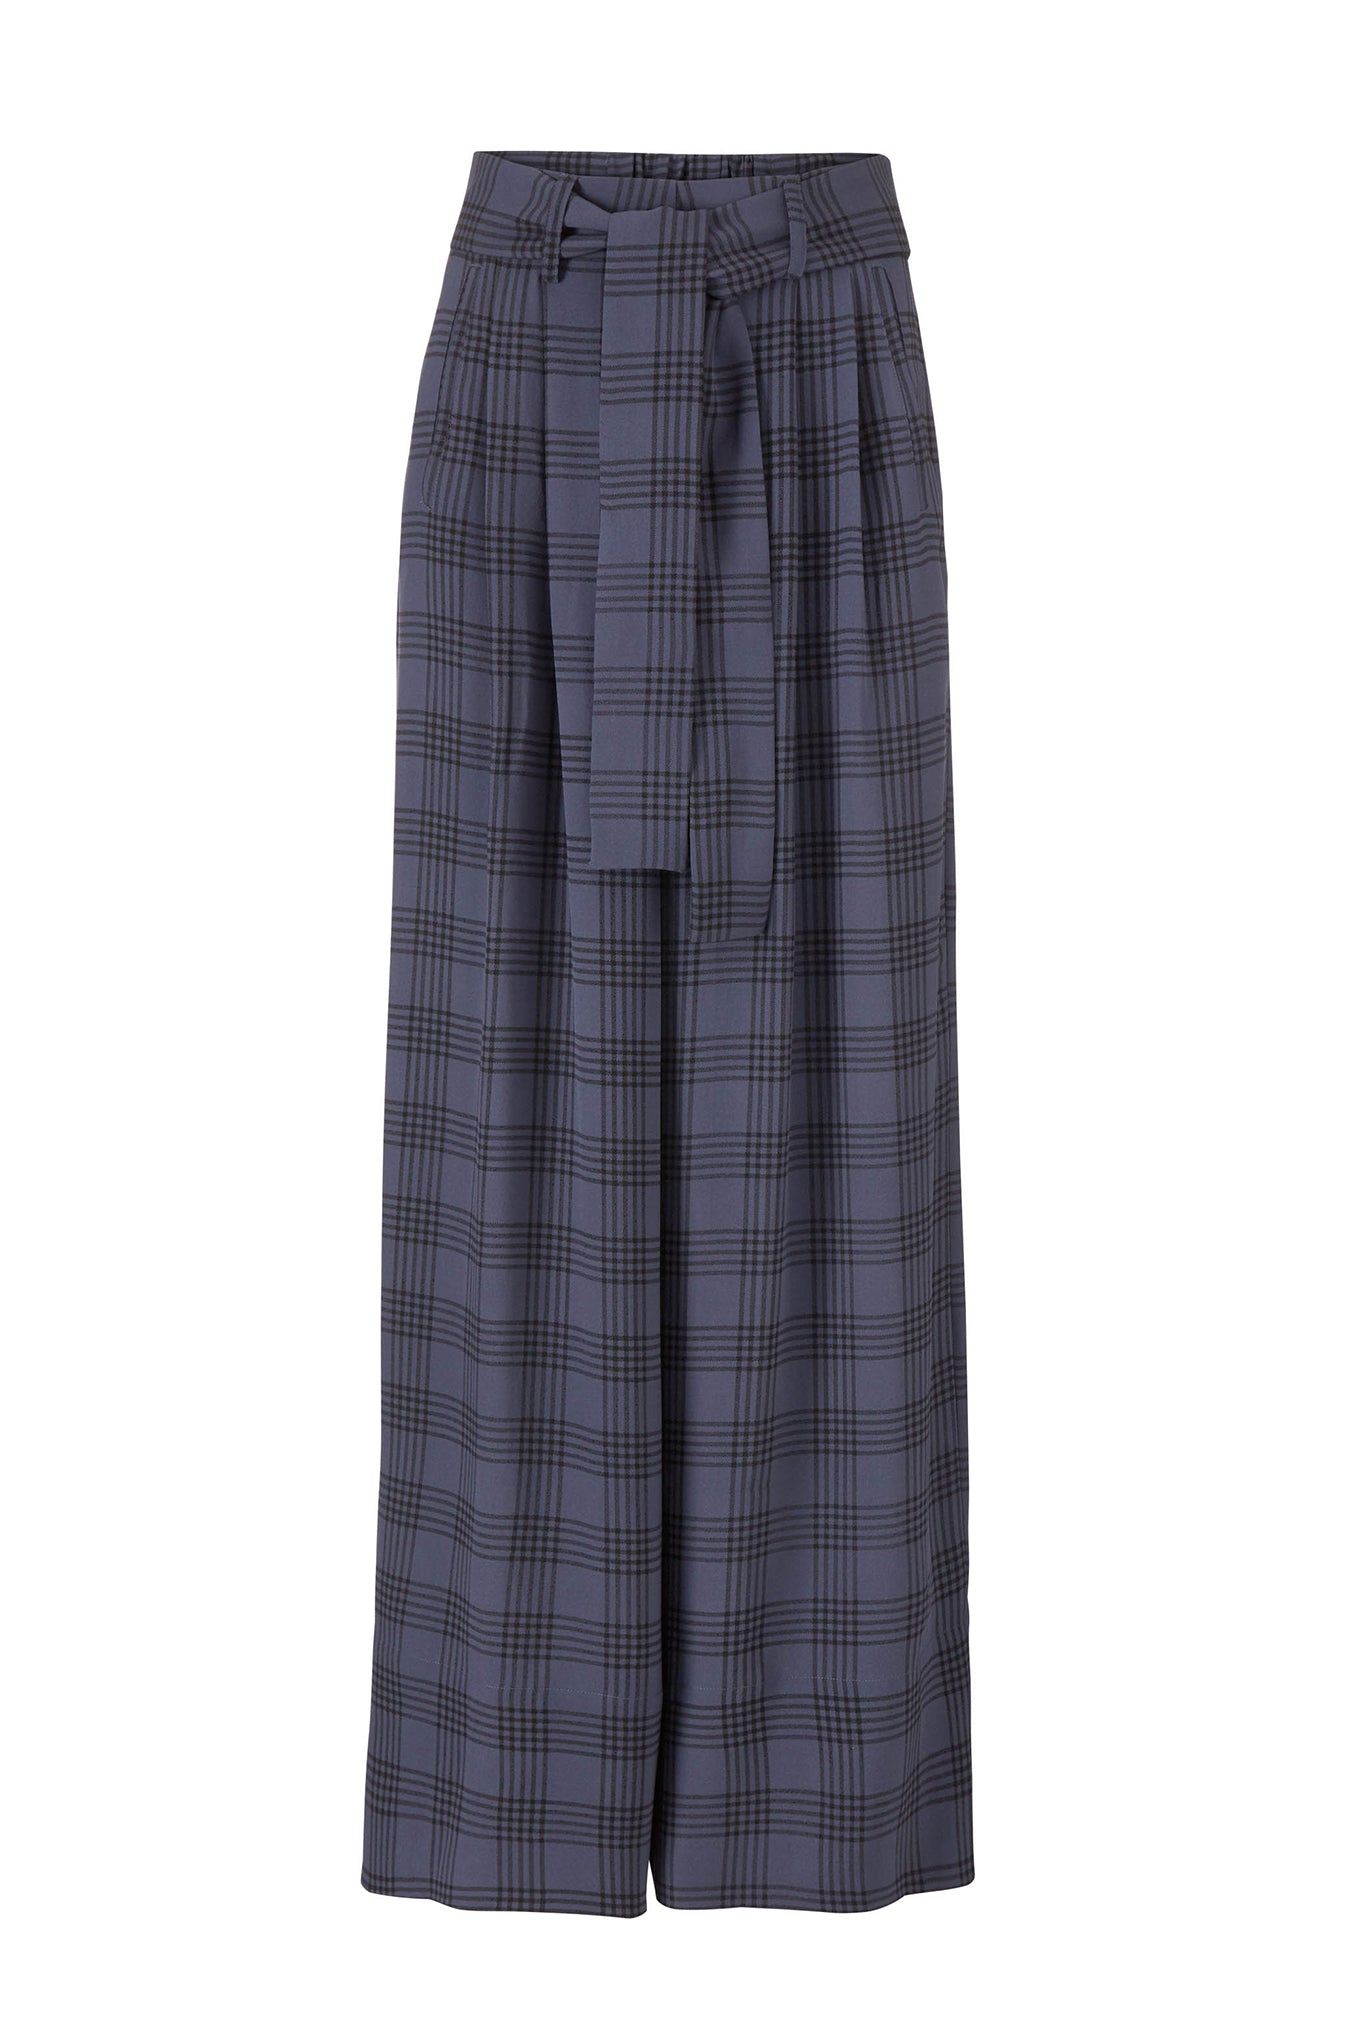 BOBBY PANTS - CROWN BLUE/BLACK CHECK